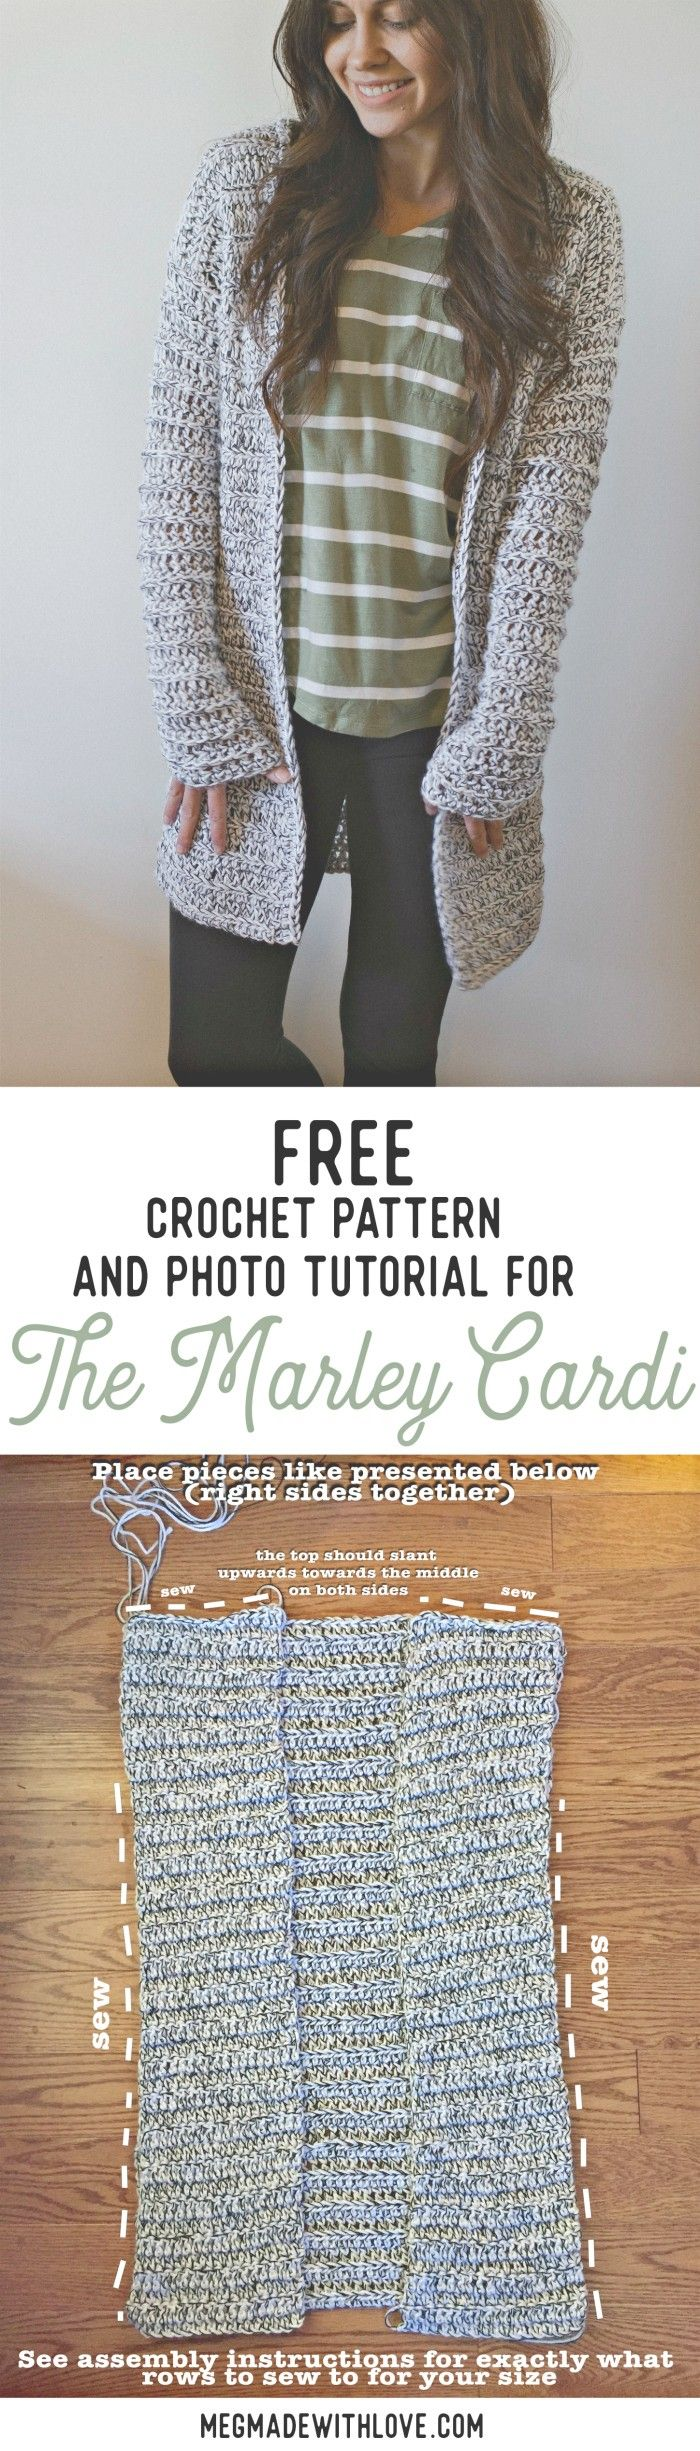 826 best Crochet Fashions images on Pinterest | Boy crochet, Chunky ...